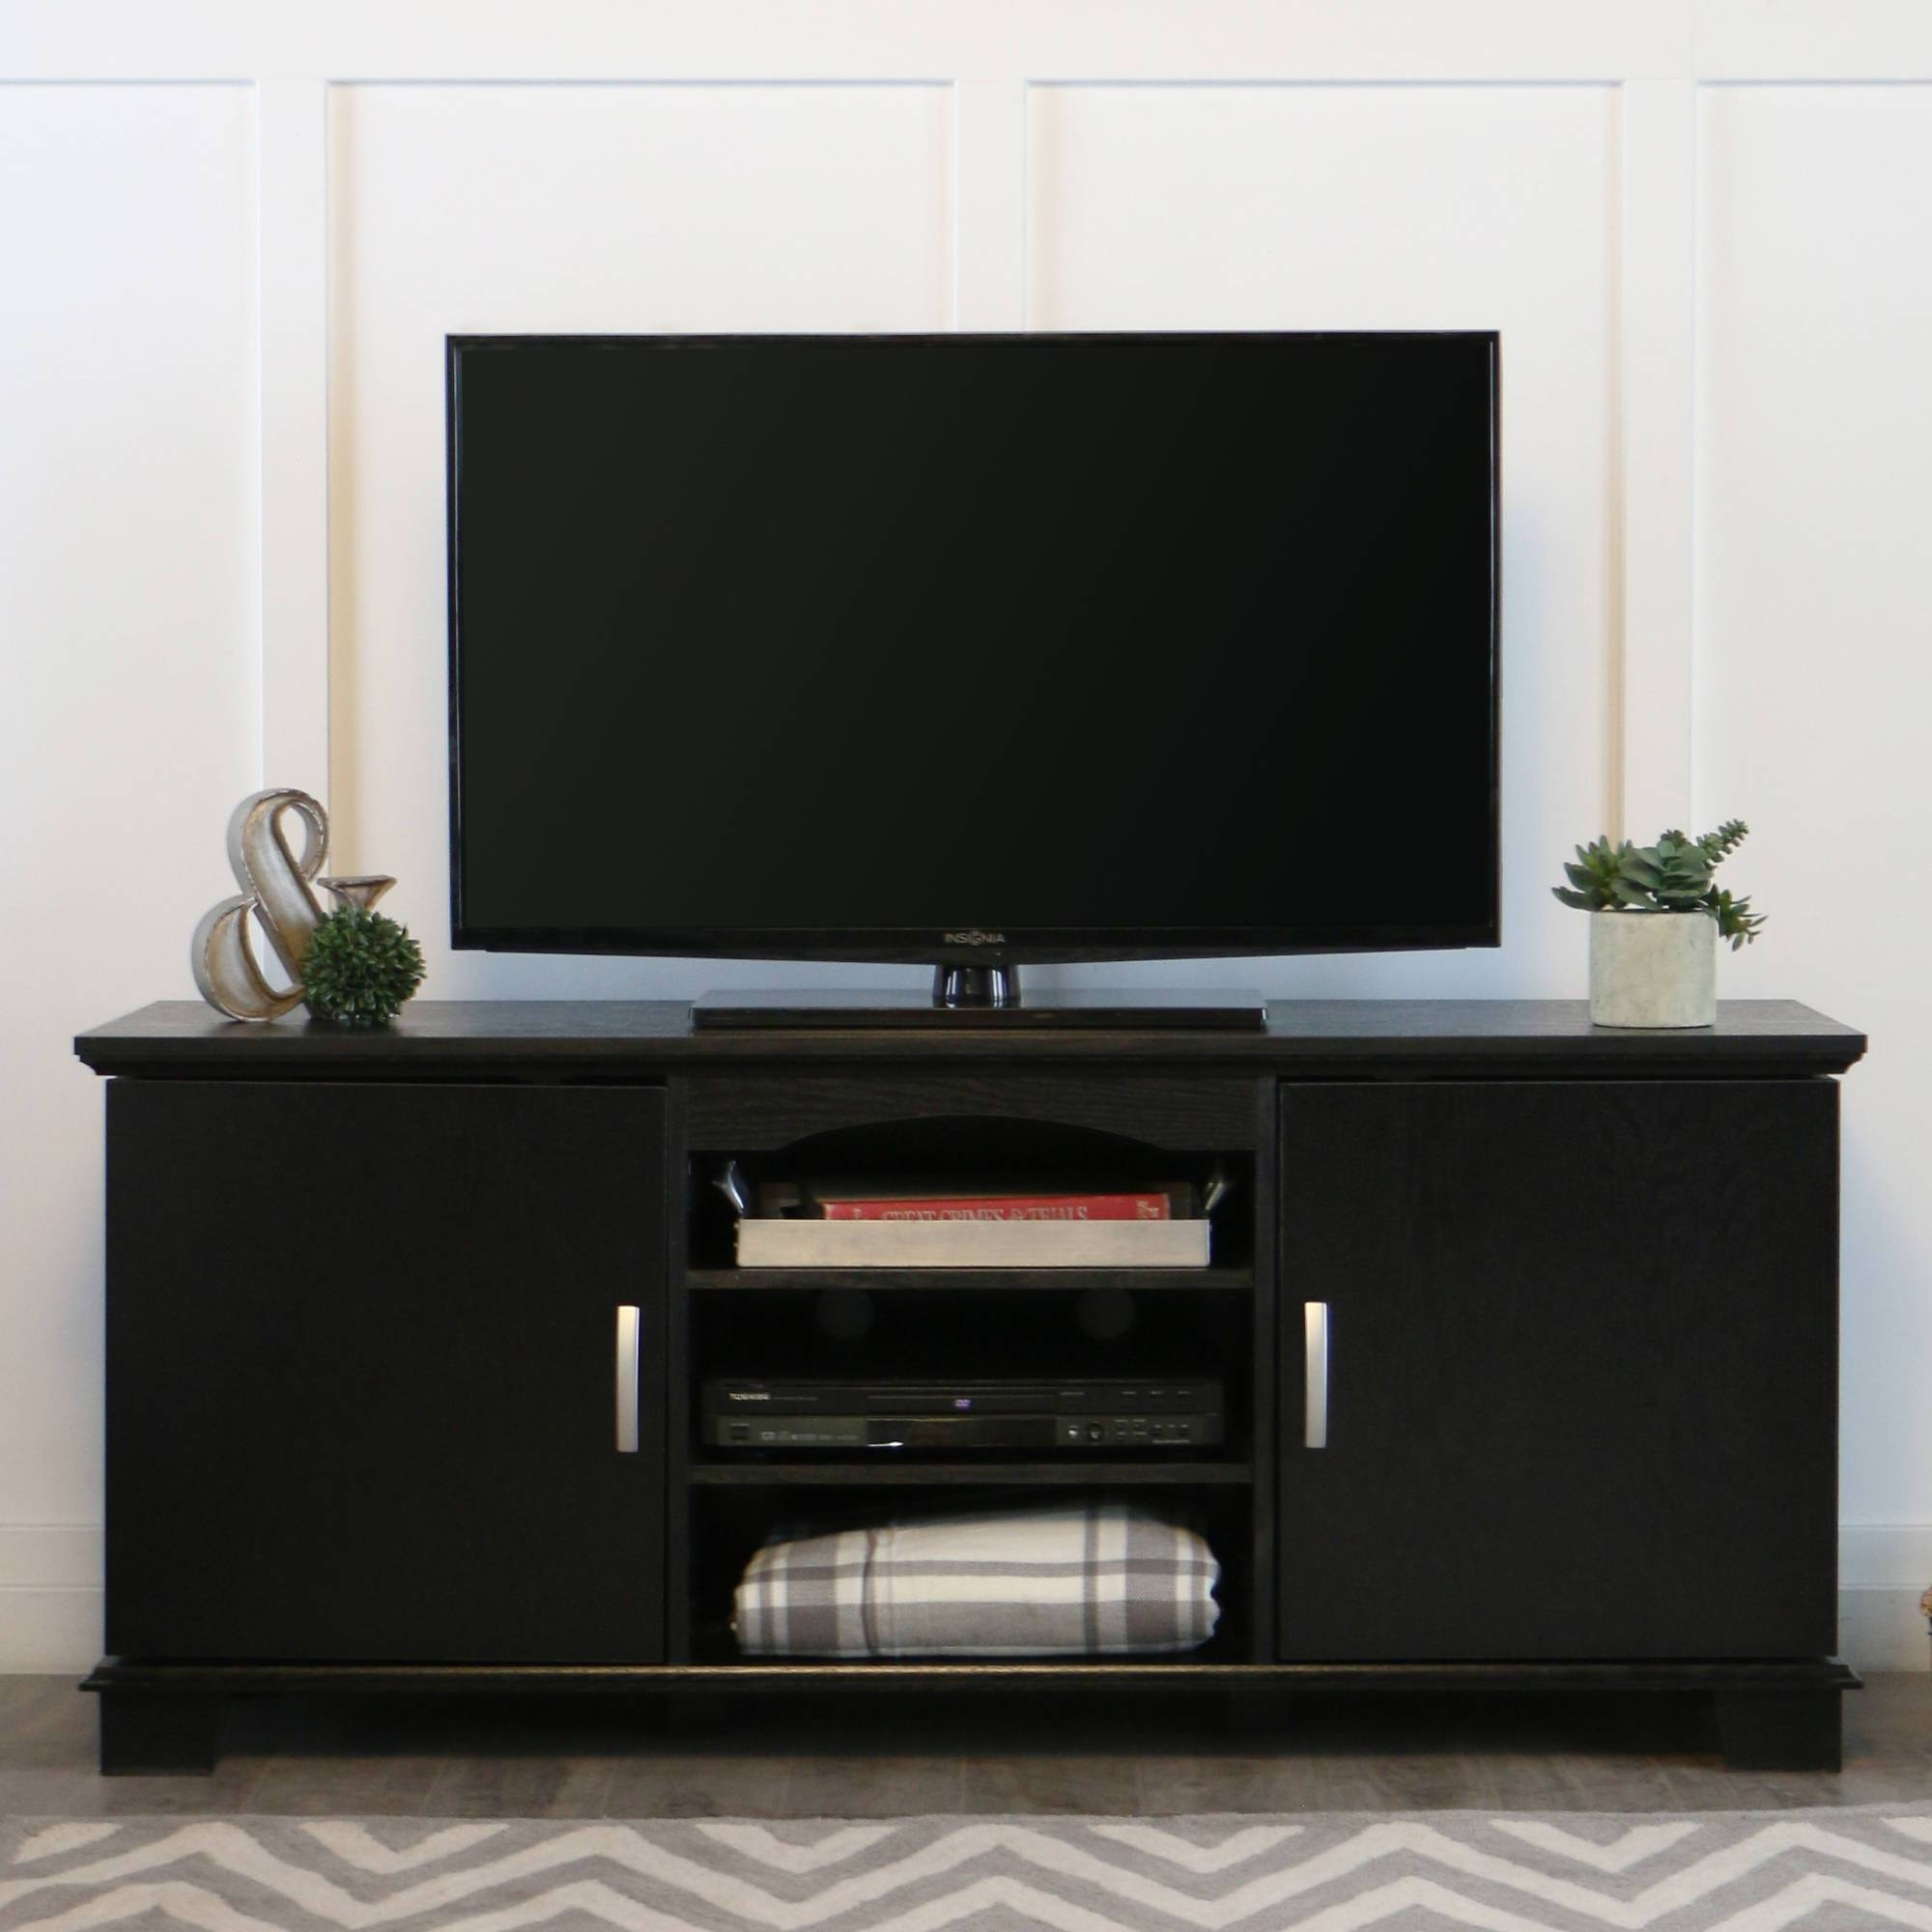 "Walker Edison Black Tv Stand For Tvs Up To 65"", Multiple Colors with regard to Black Tv Cabinets With Drawers (Image 14 of 15)"